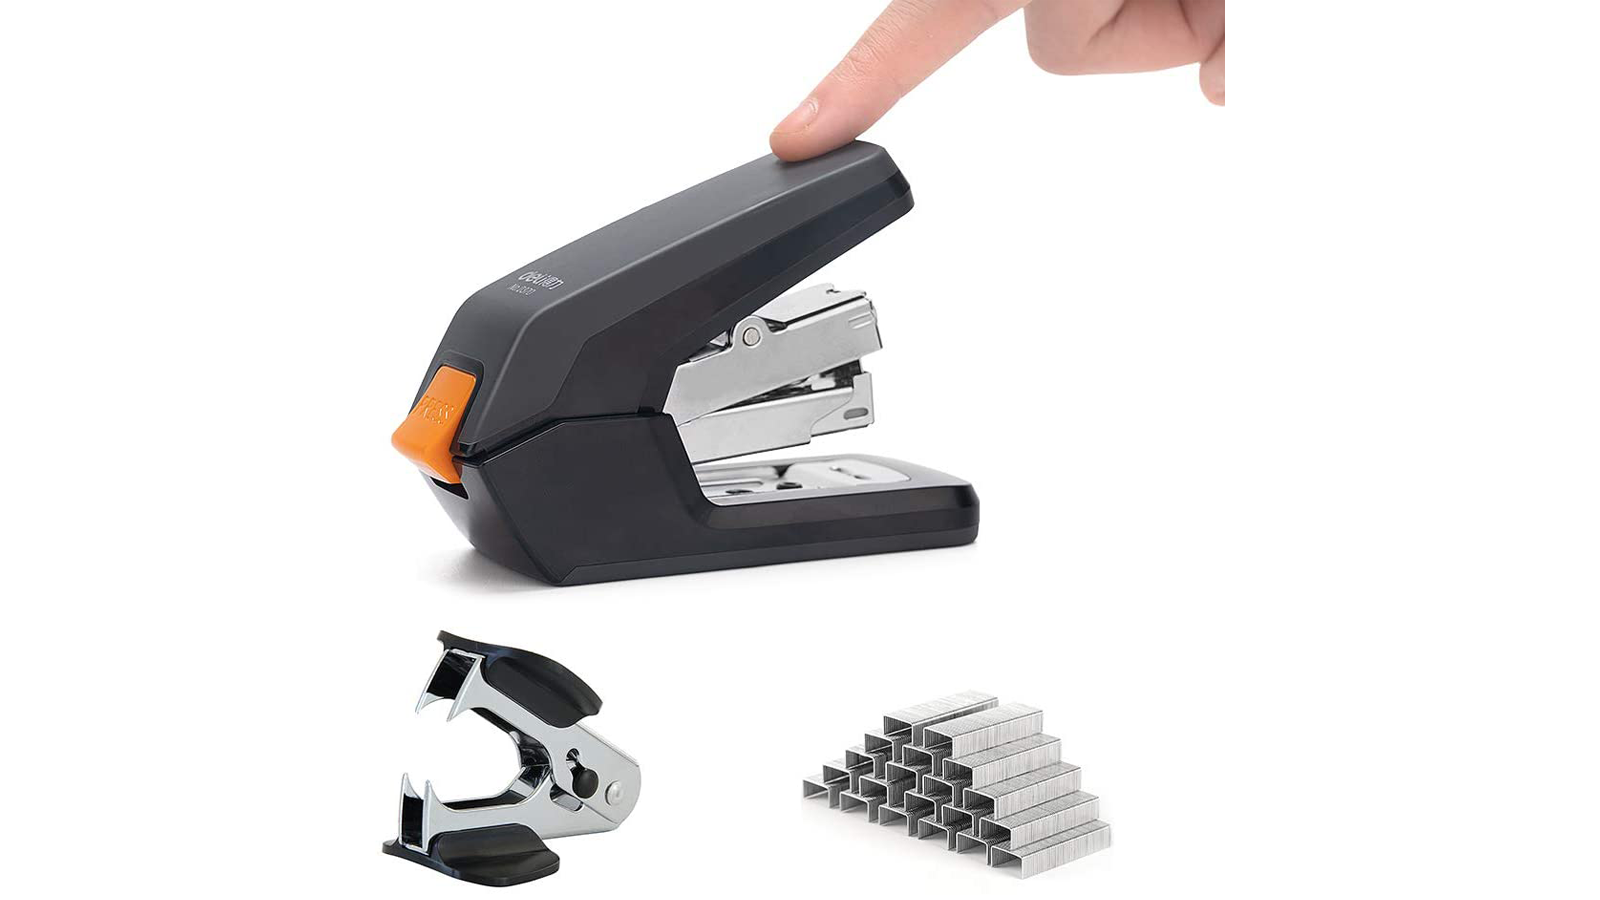 Ensure You Have All the Office Staples You'll Need, Including This Stapler